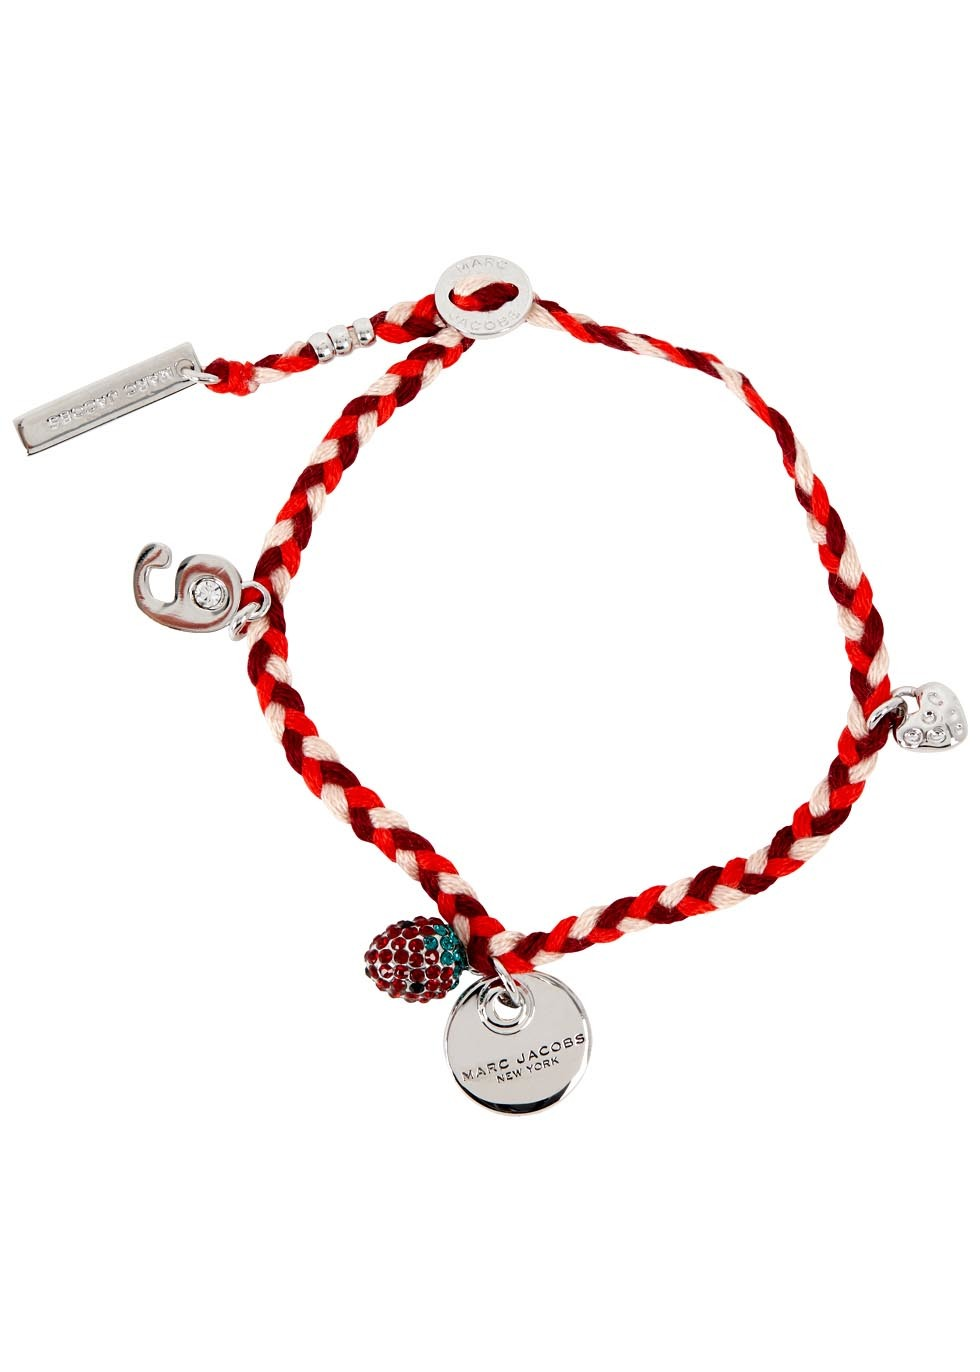 Crystal Embellished Braided Bracelet - secondary colour: true red; predominant colour: silver; occasions: casual, creative work; style: charm; size: standard; material: fabric/cotton; finish: plain; embellishment: chain/metal; season: s/s 2016; wardrobe: highlight